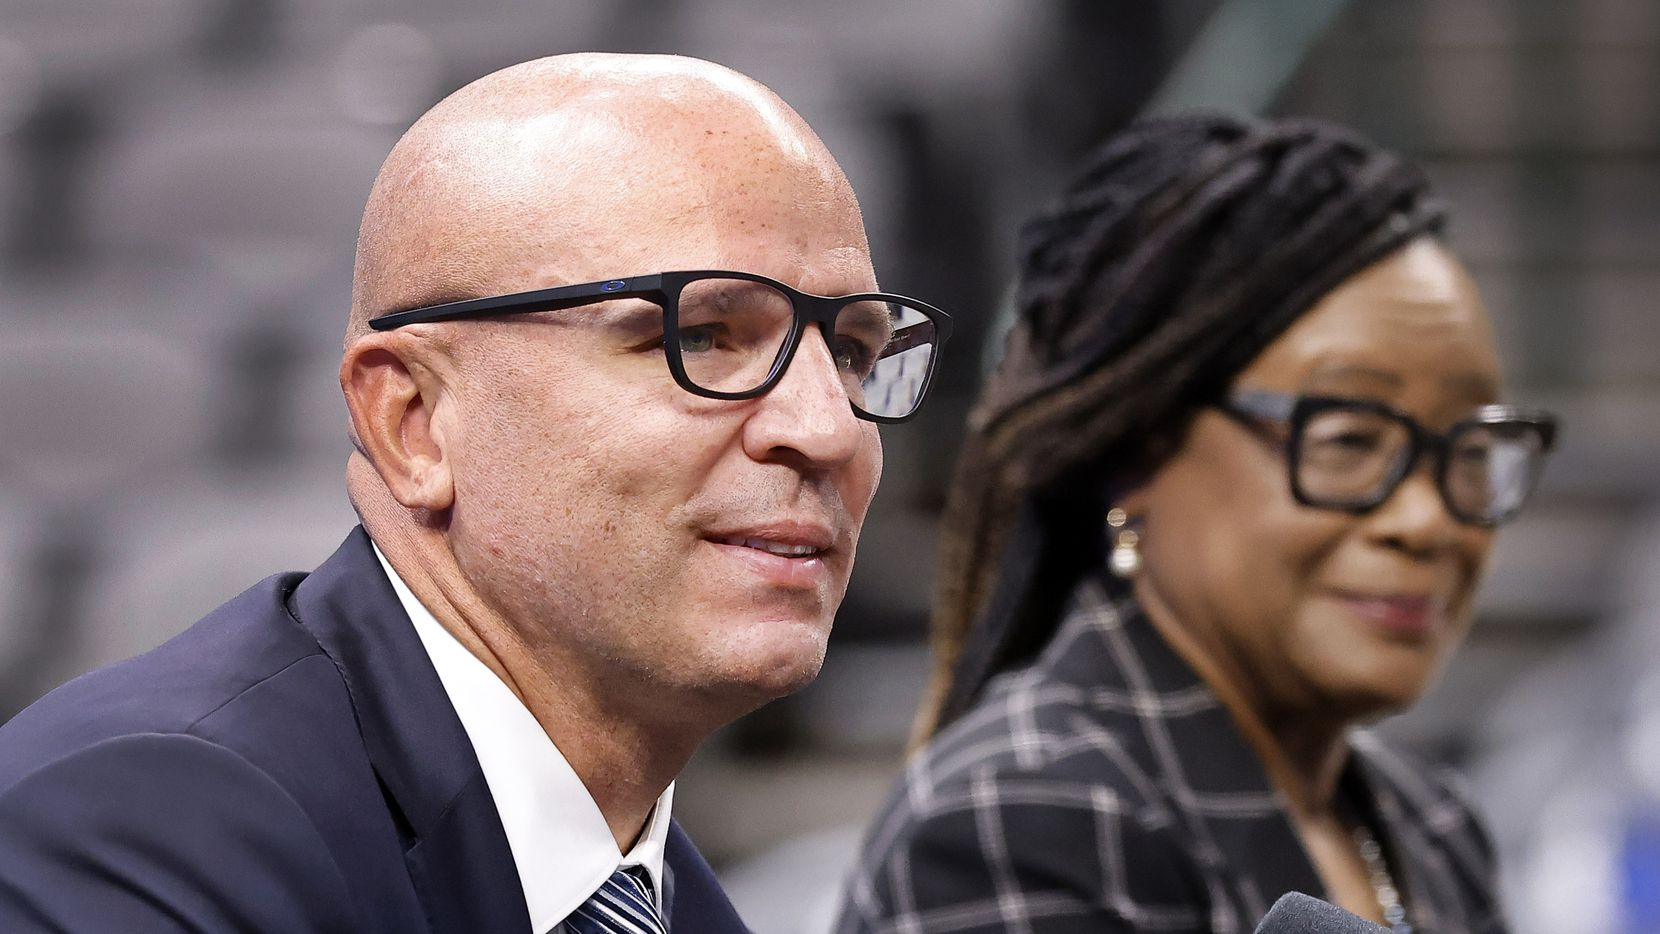 Dallas Mavericks new head coach Jason Kidd responds to questions from the media during his formal introduction alongside CEO Cynt Marshall at the American Airlines Center, Thursday, July 15, 2021.